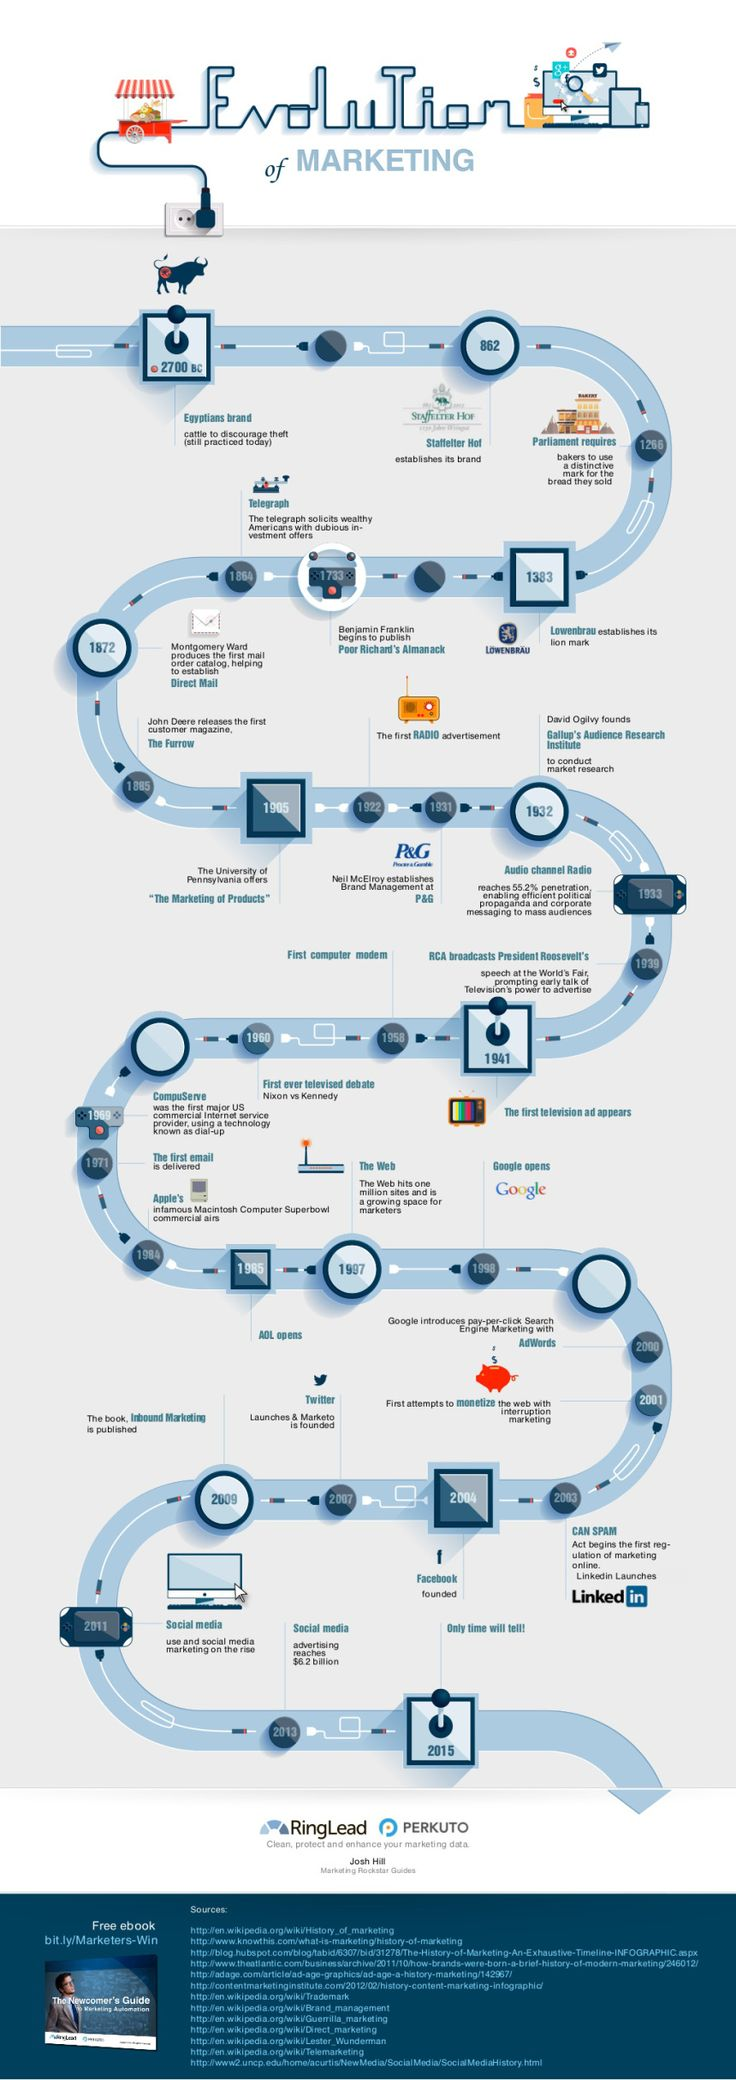 La evolución del marketing #infografia #infographic #marketing